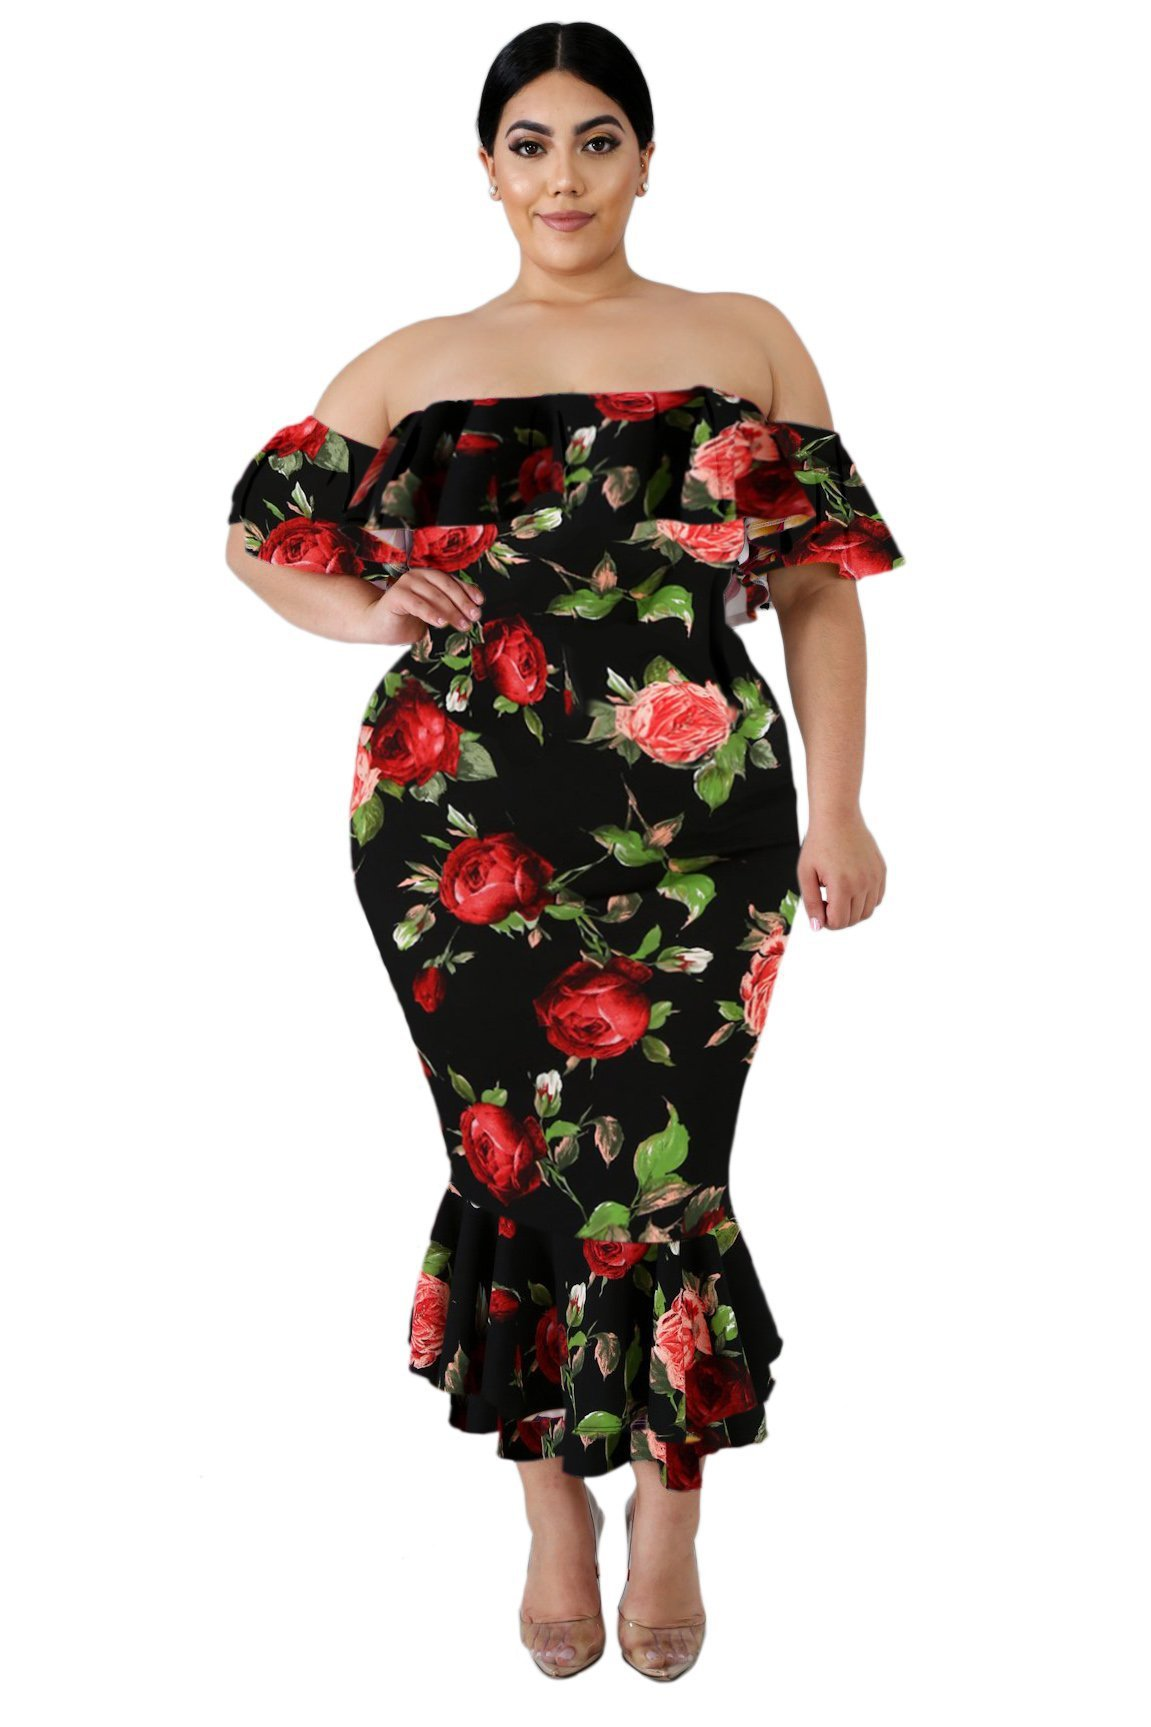 plus size Off Shoulder Dress XL / AUS 14 / Multi aa. Juliette Dress